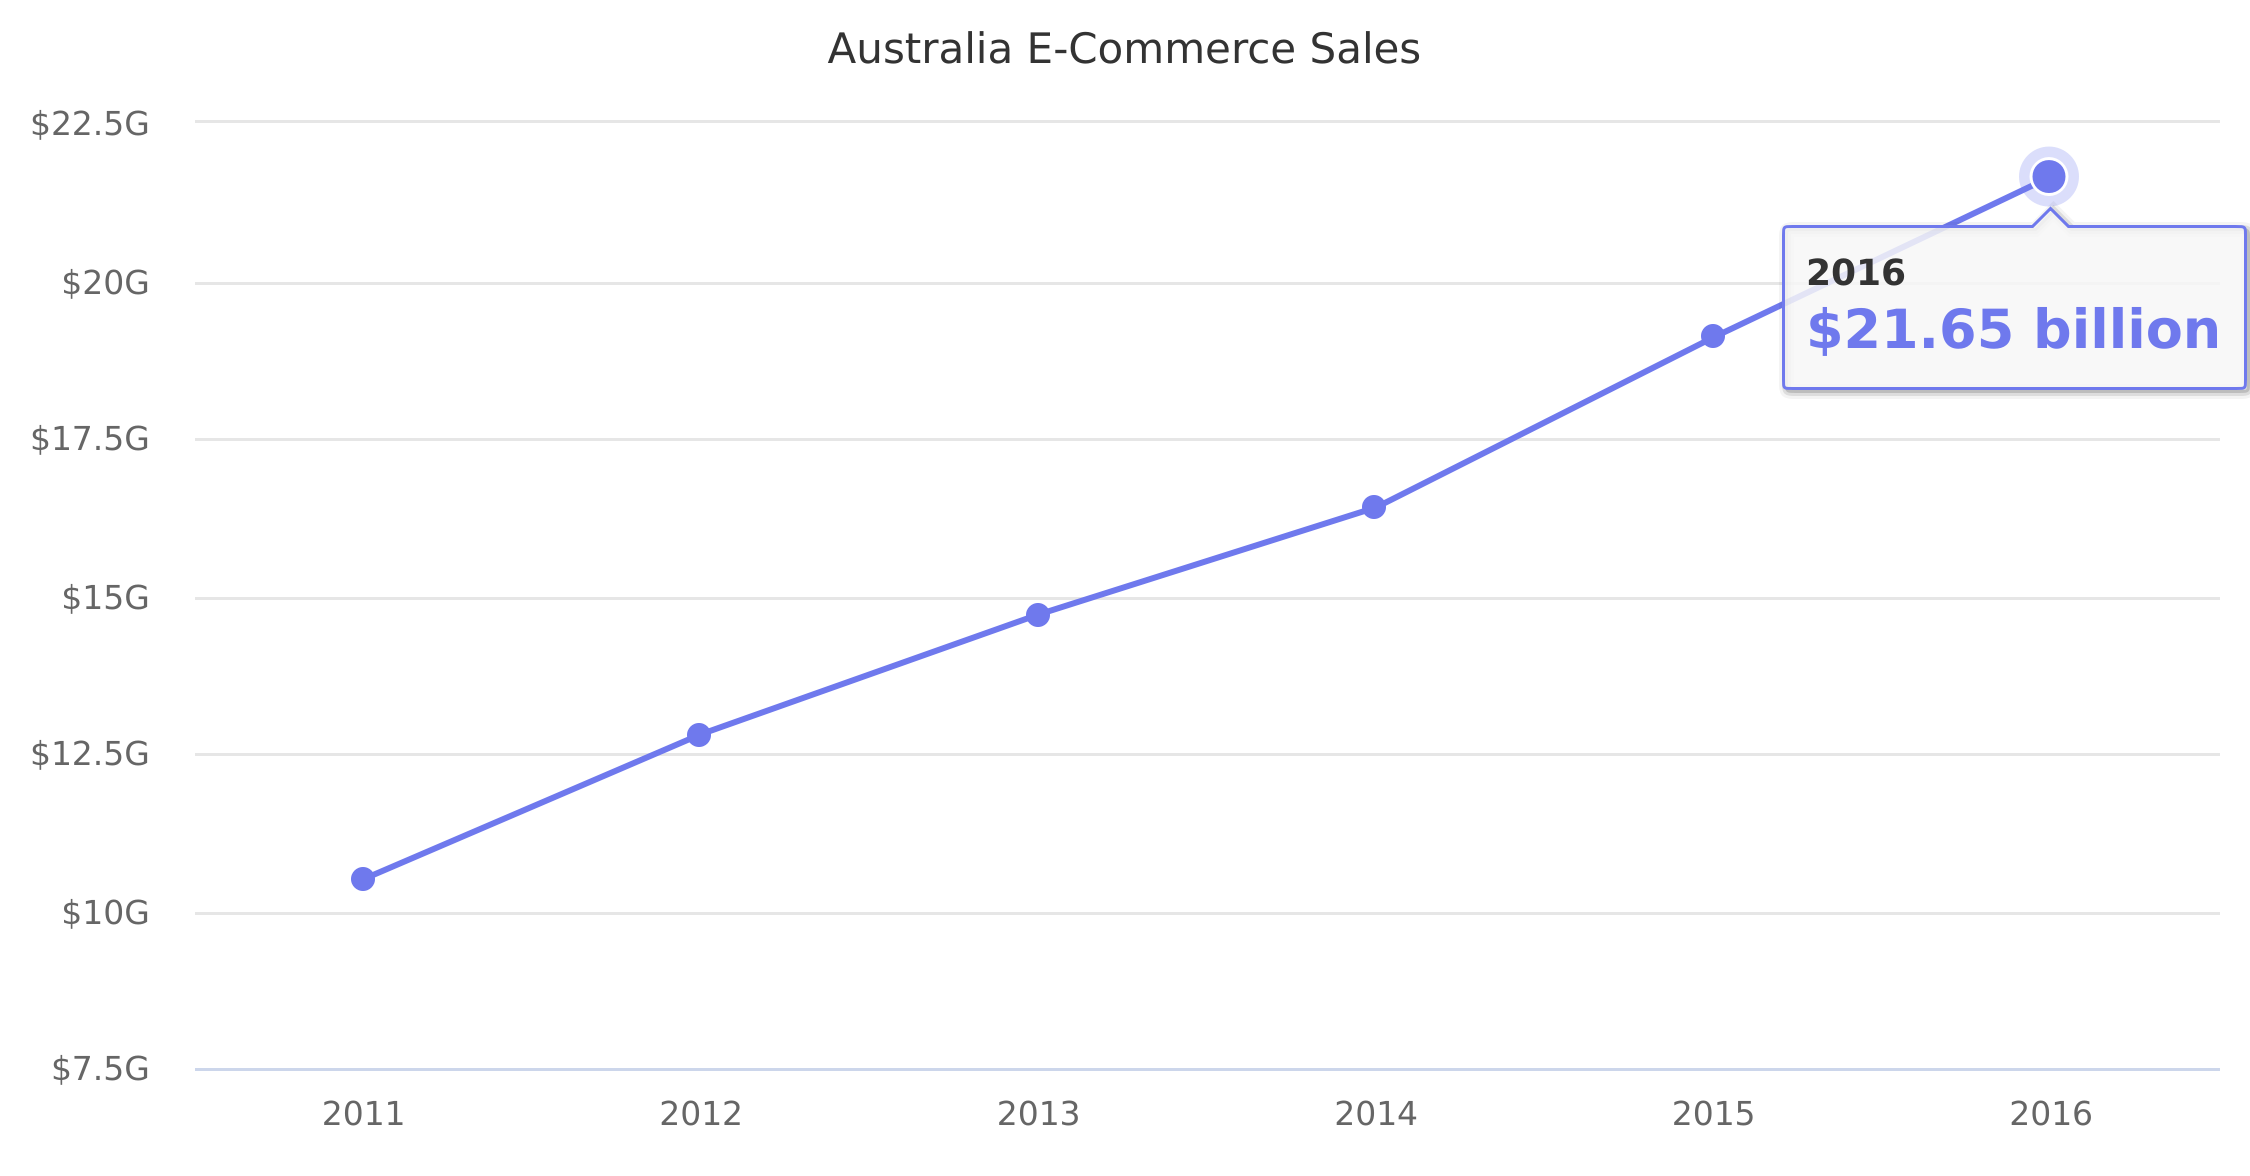 Australia E-Commerce Sales 2011-2016